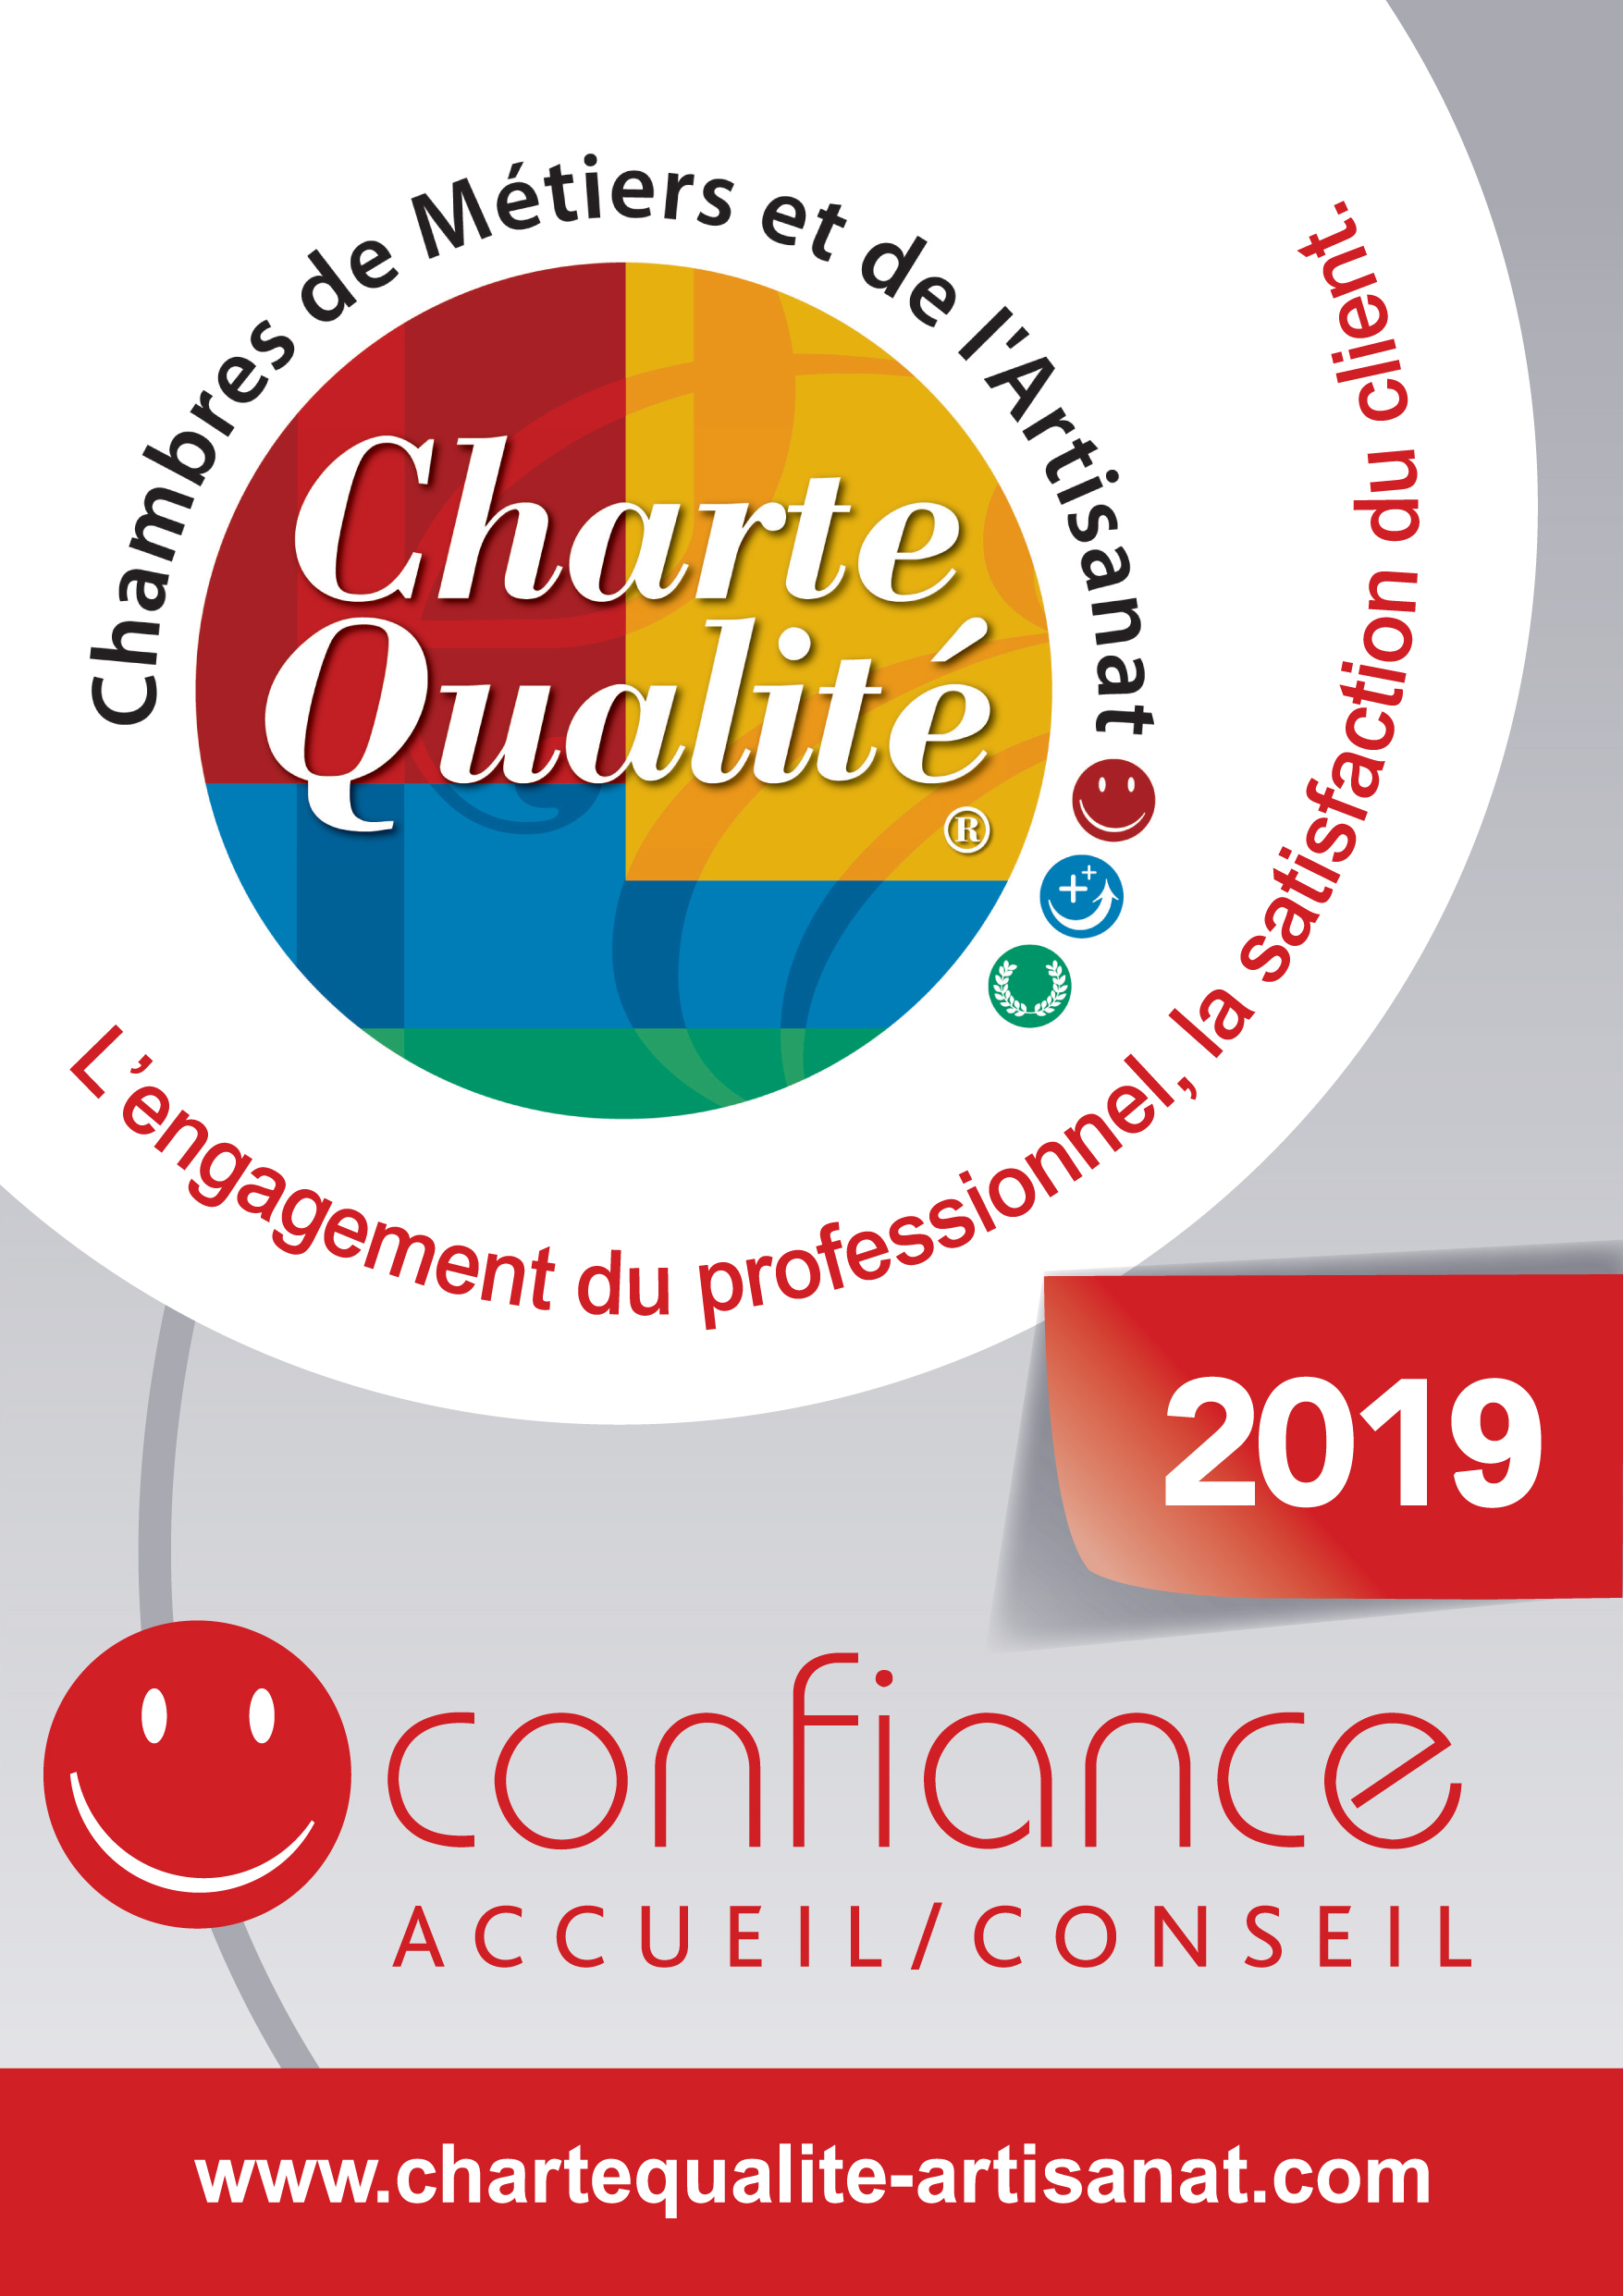 Charter of quality and confidence